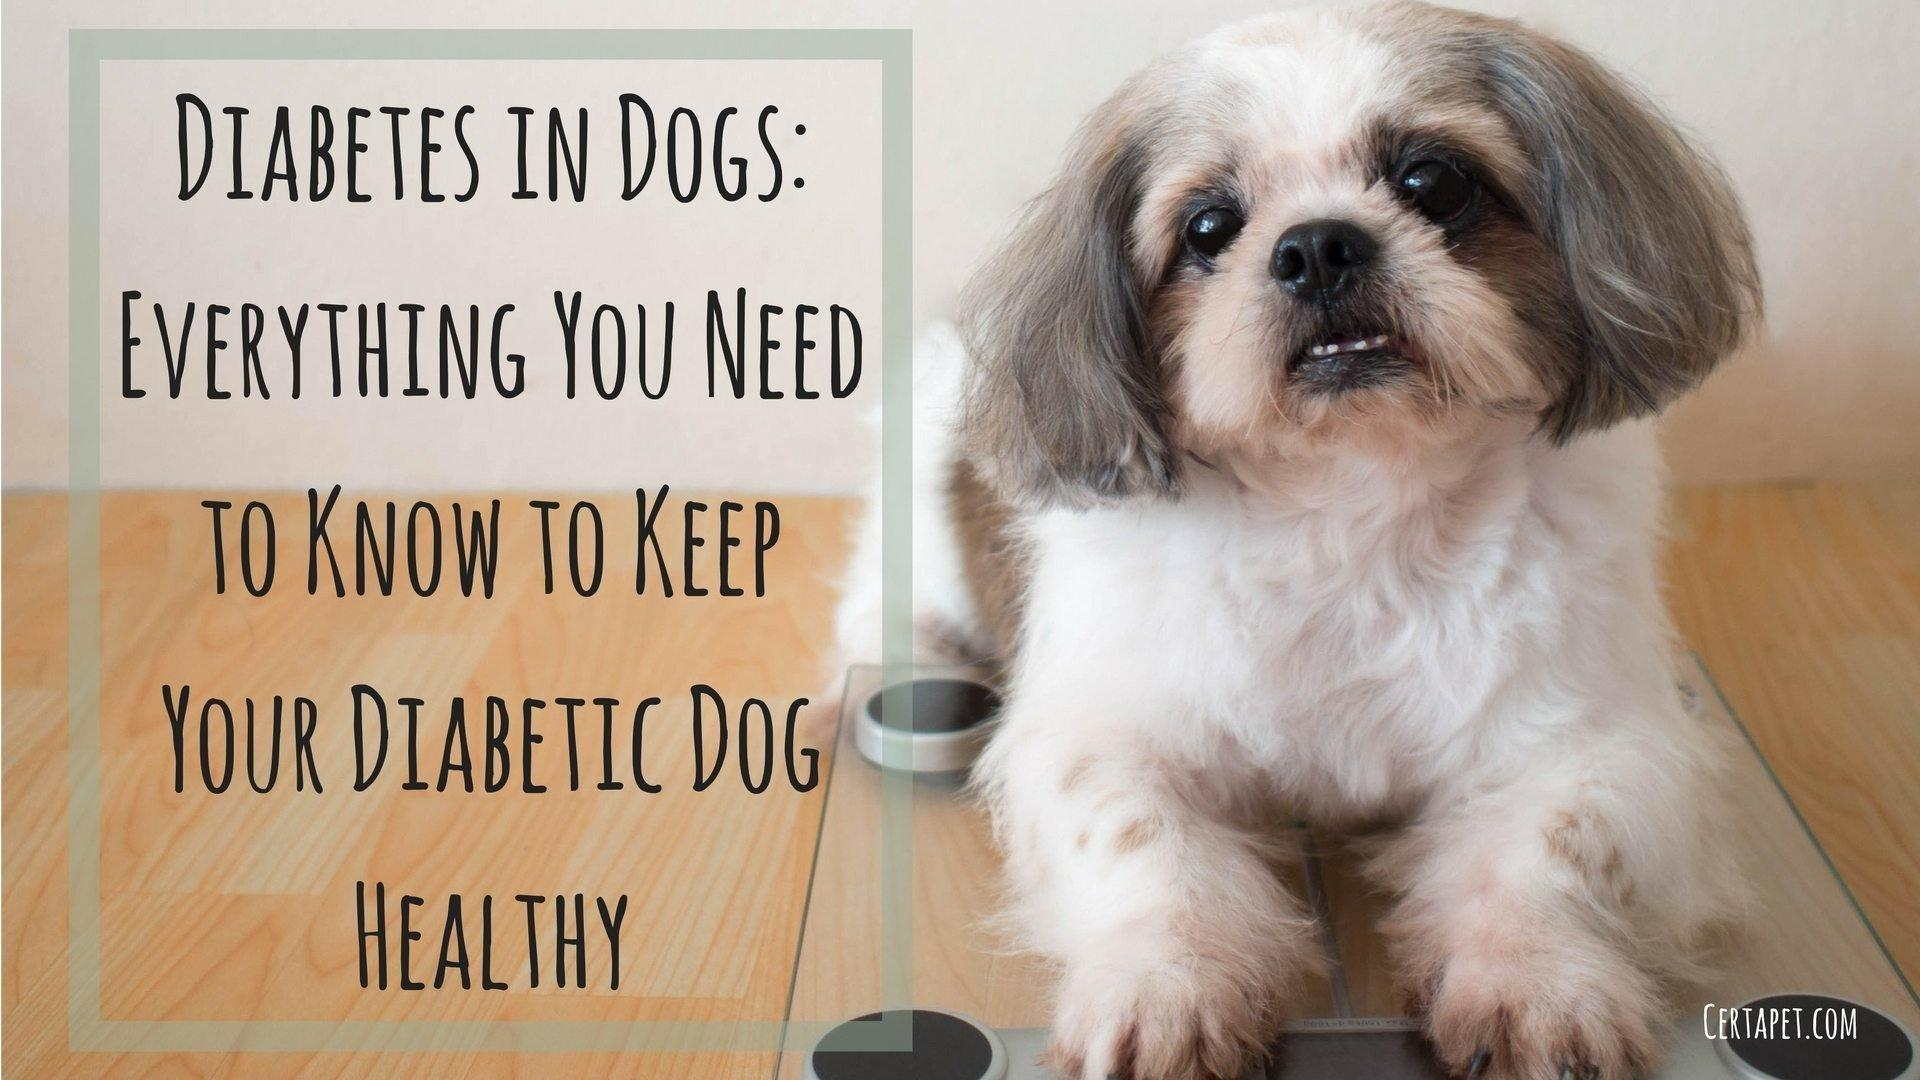 Diabetes In Dogs: Everything You Need To Know To Keep Them Healthy